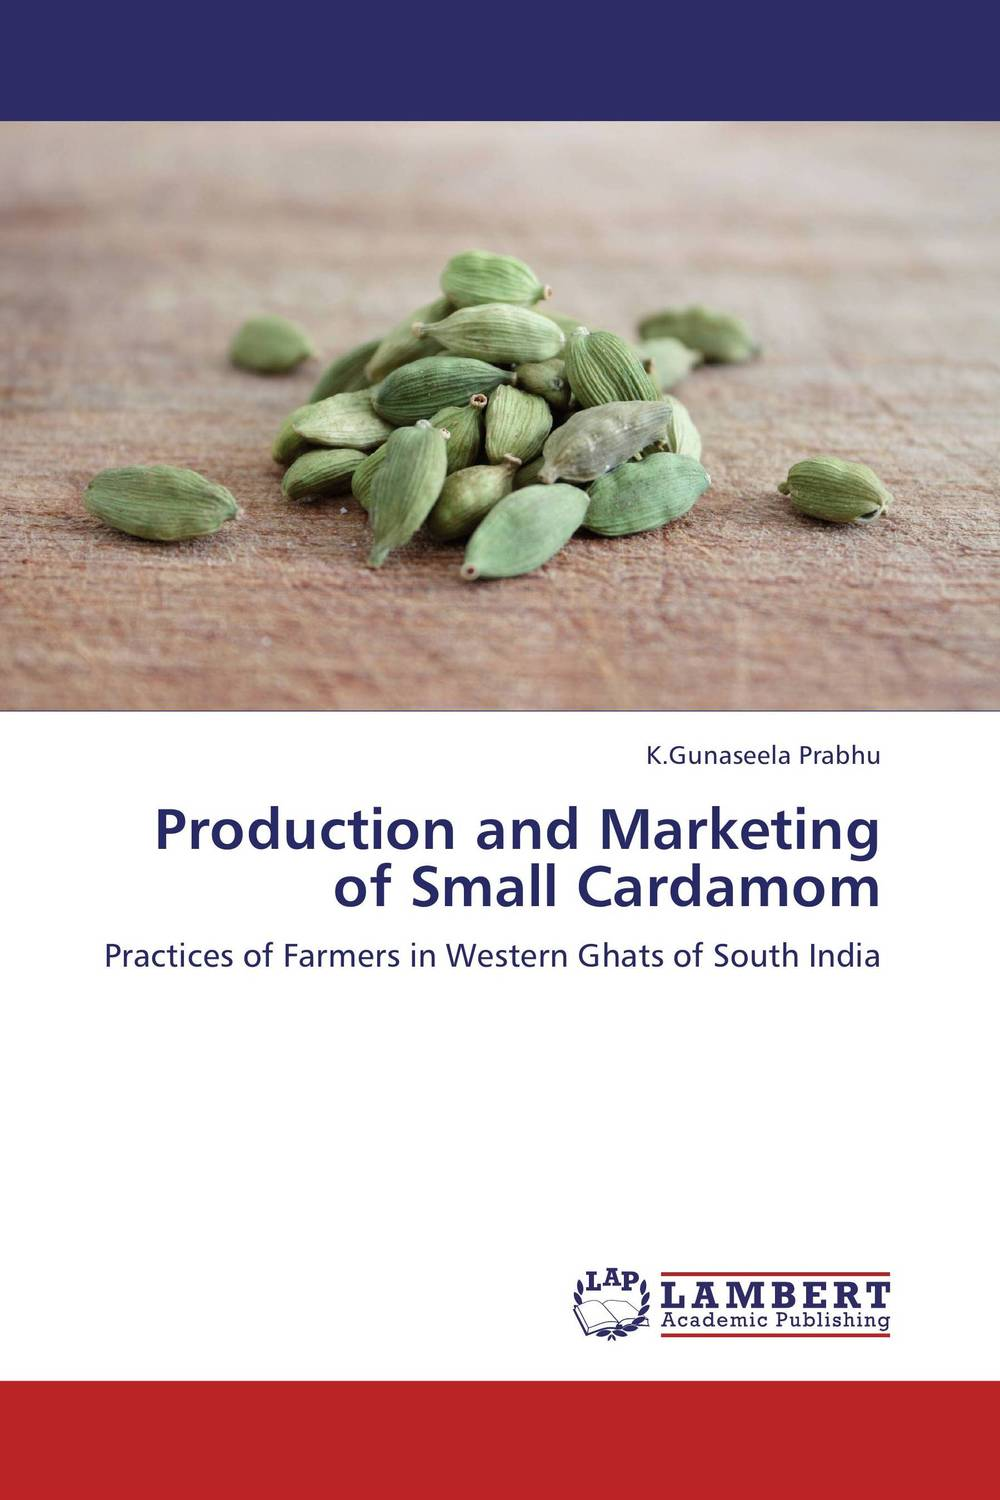 Production and Marketing of Small Cardamom